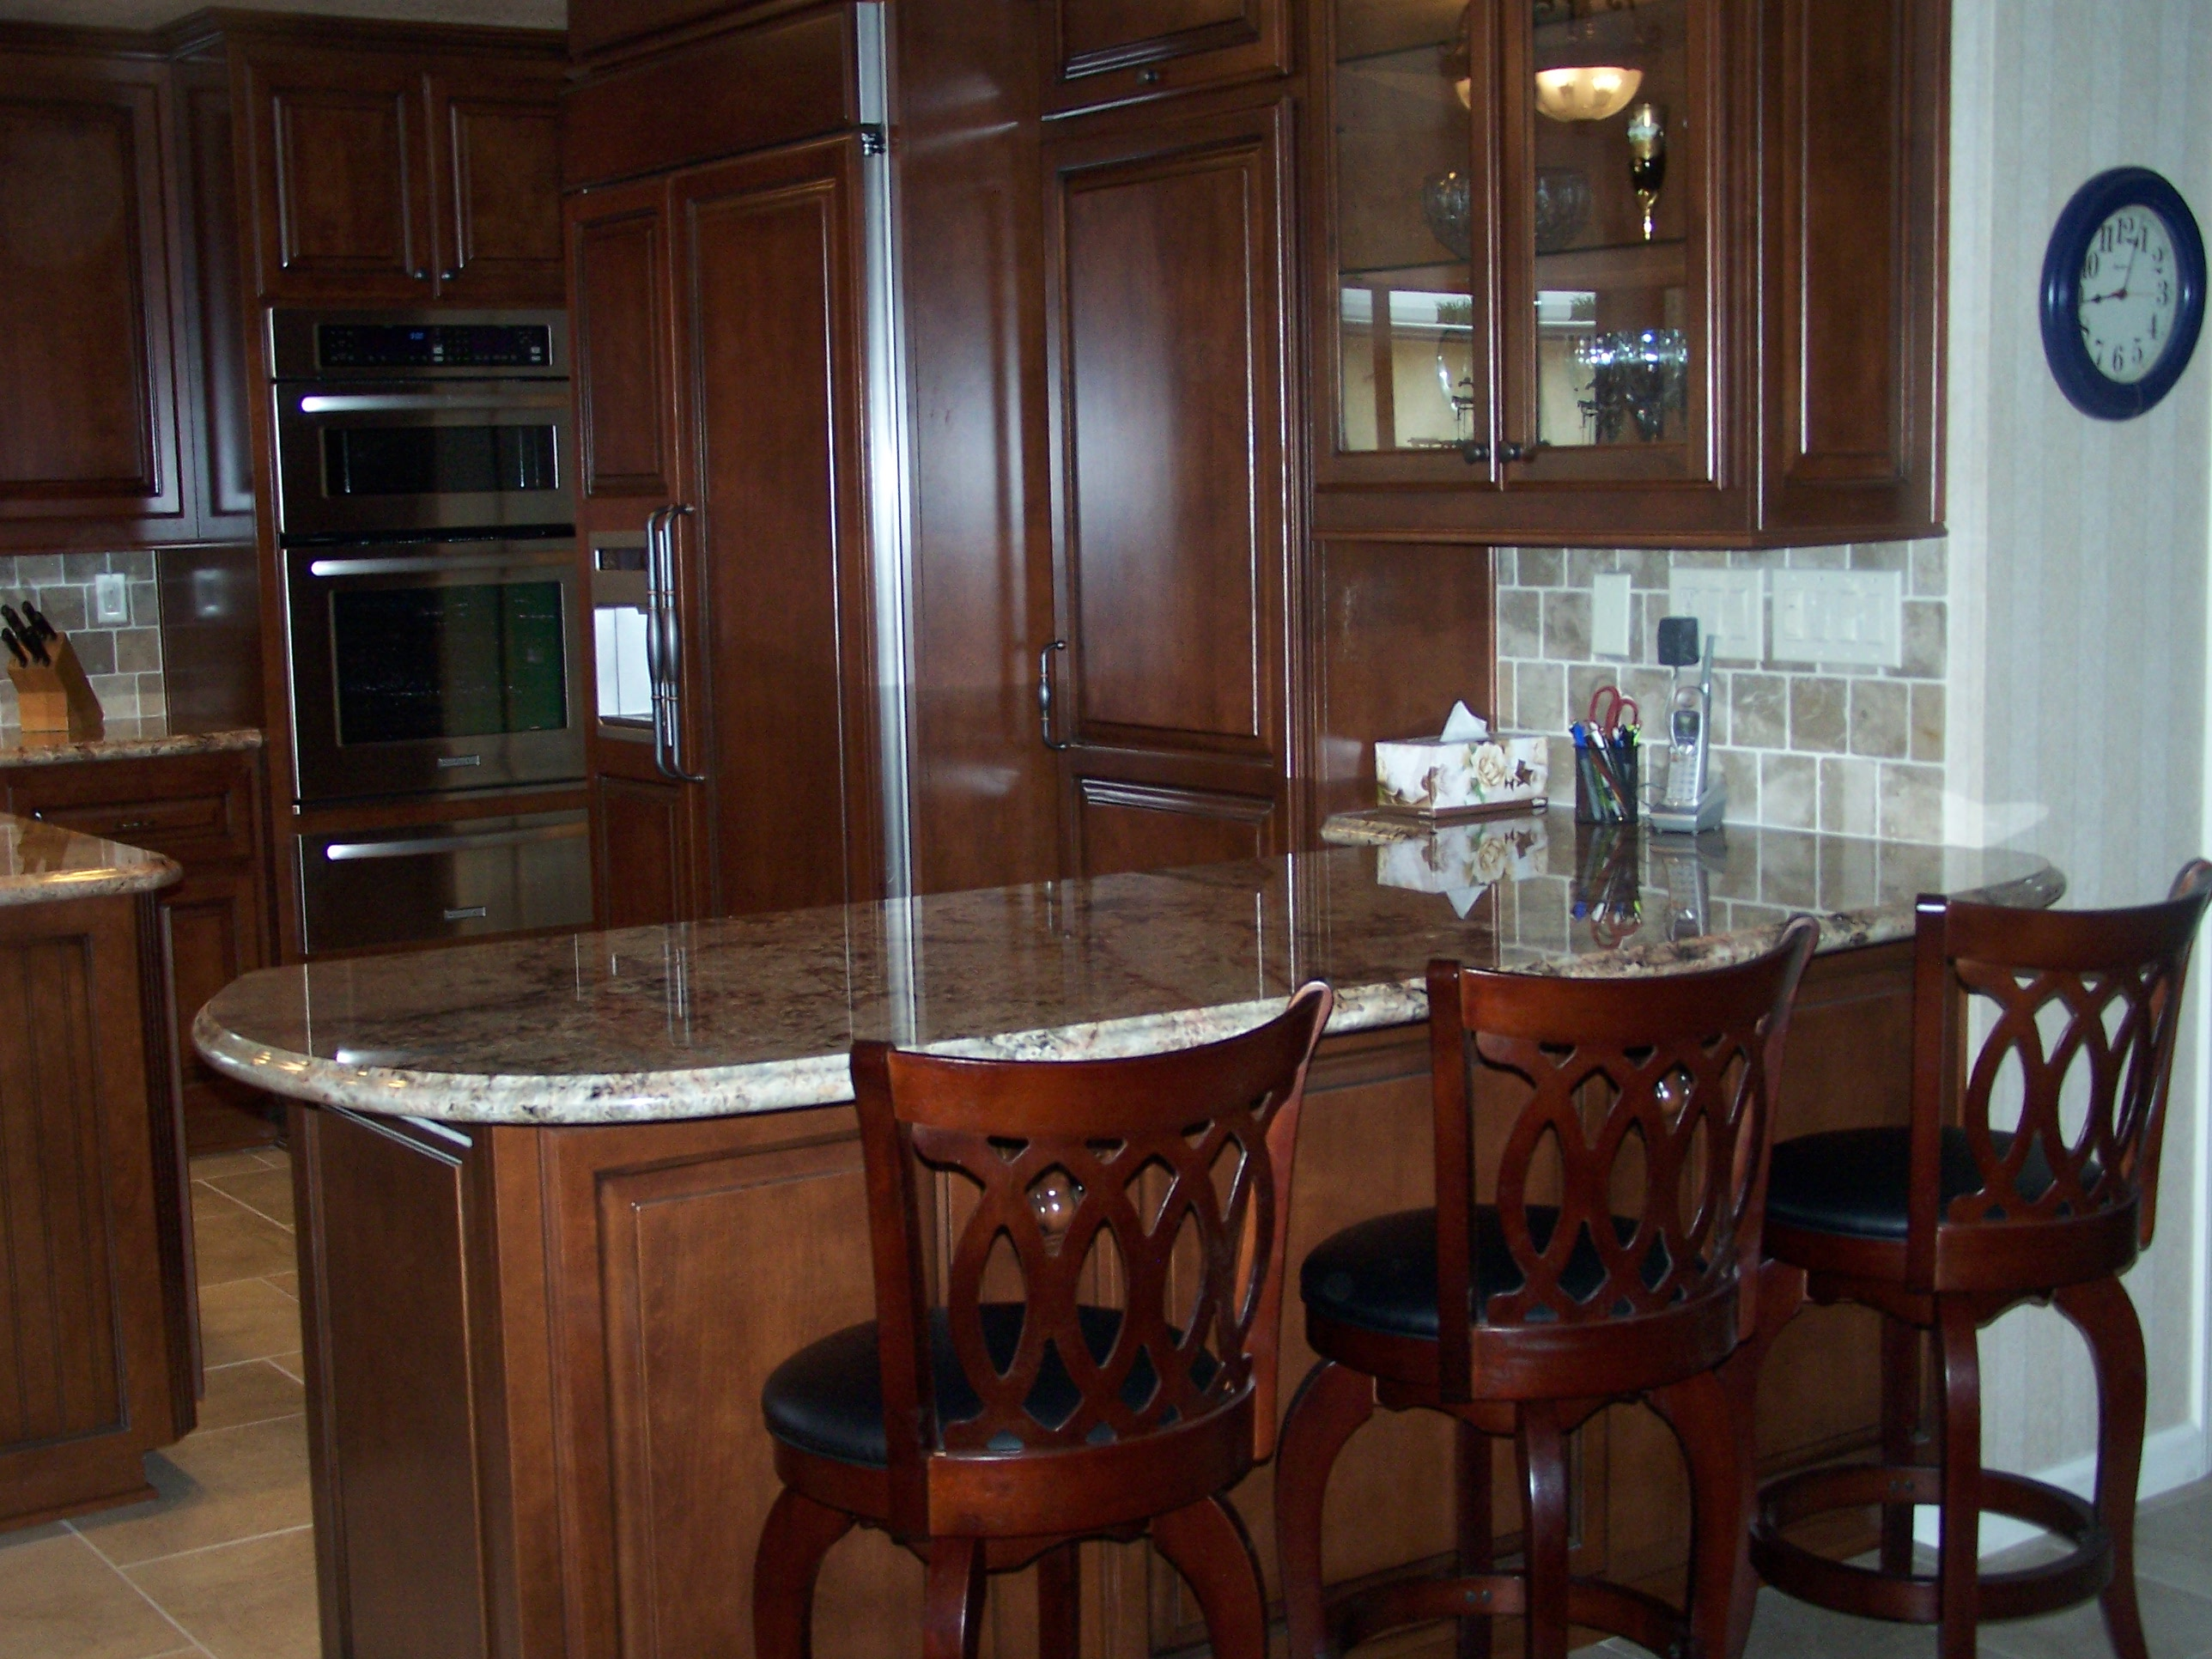 kitchen bar designs custom kitchen cabinetry with breakfast bar c amp l design 2279